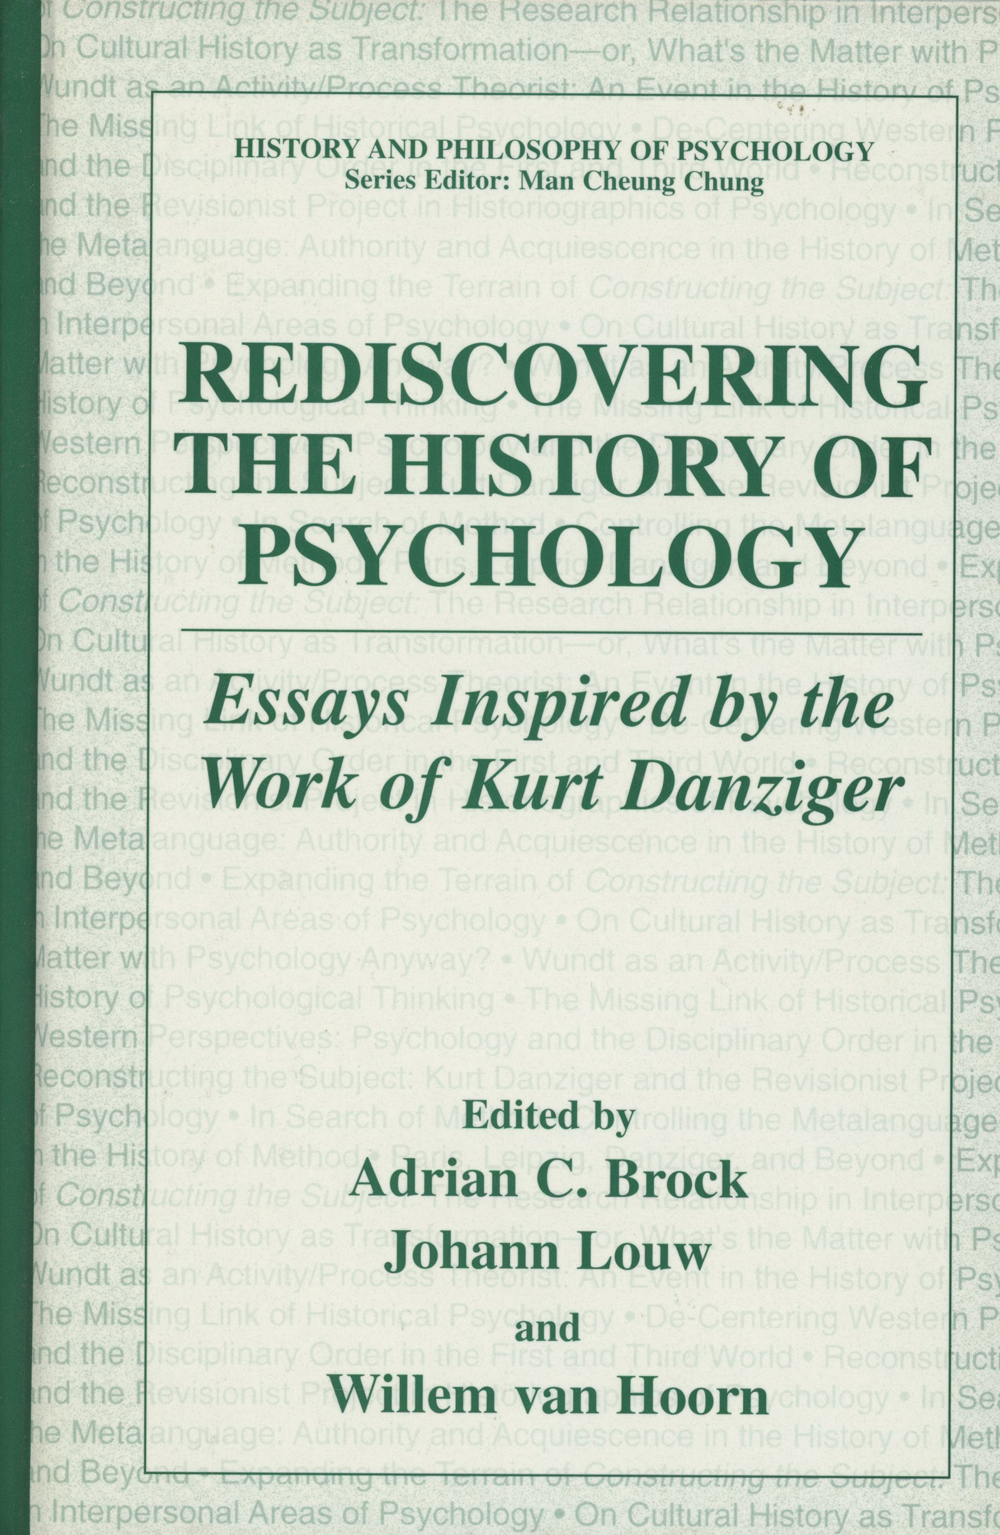 rediscovering the history of psychology essays inspired by the new